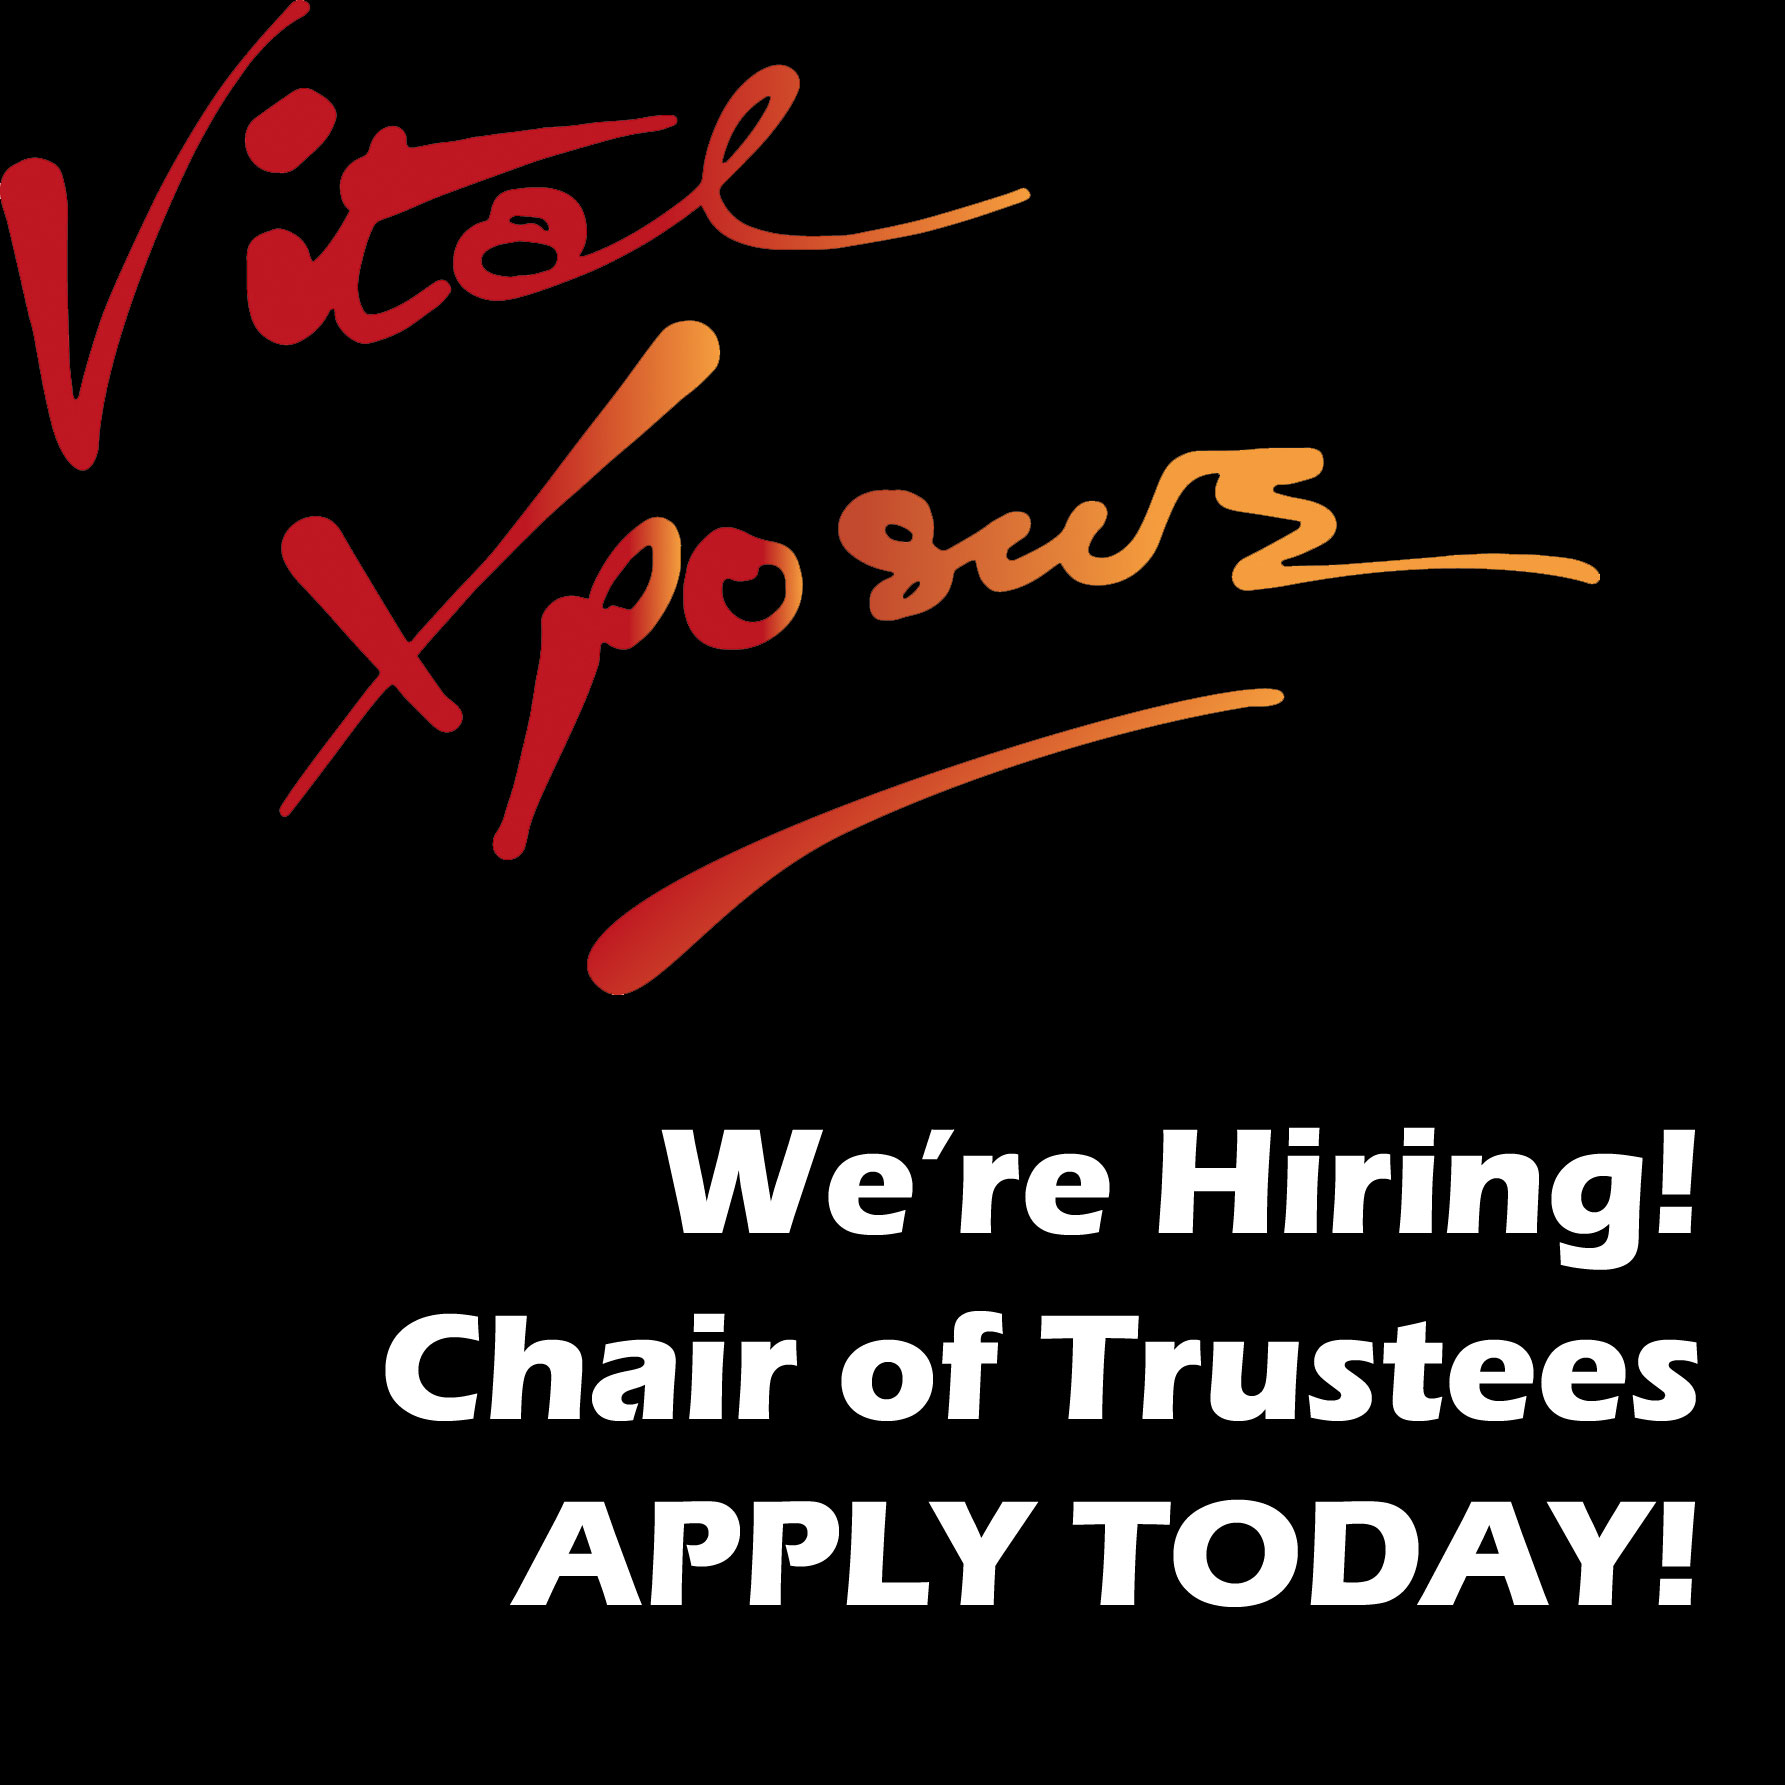 Vital Xposure Chair of Trustees